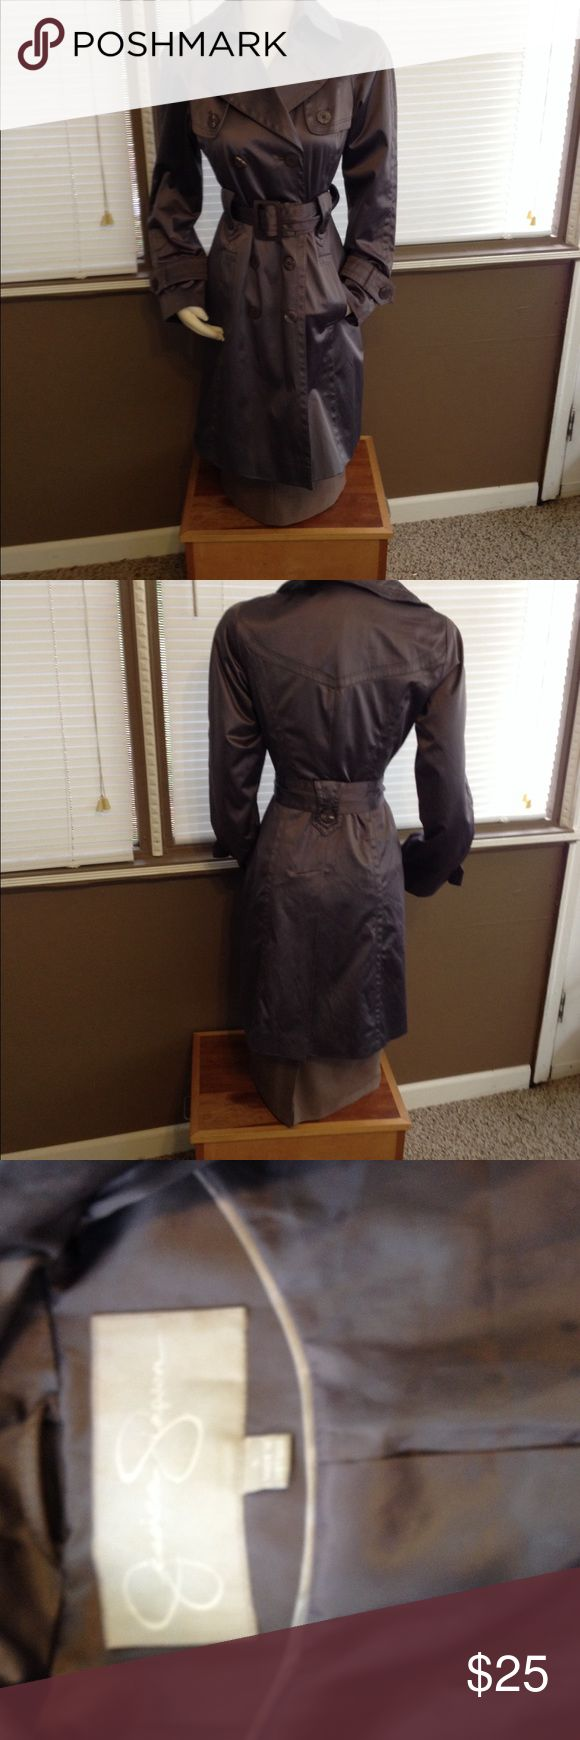 Beautiful Jessica Simpson trench coat Used. Very good condition. Gray trench coat. Missing two buttons underneath collar Jessica Simpson Jackets & Coats Trench Coats